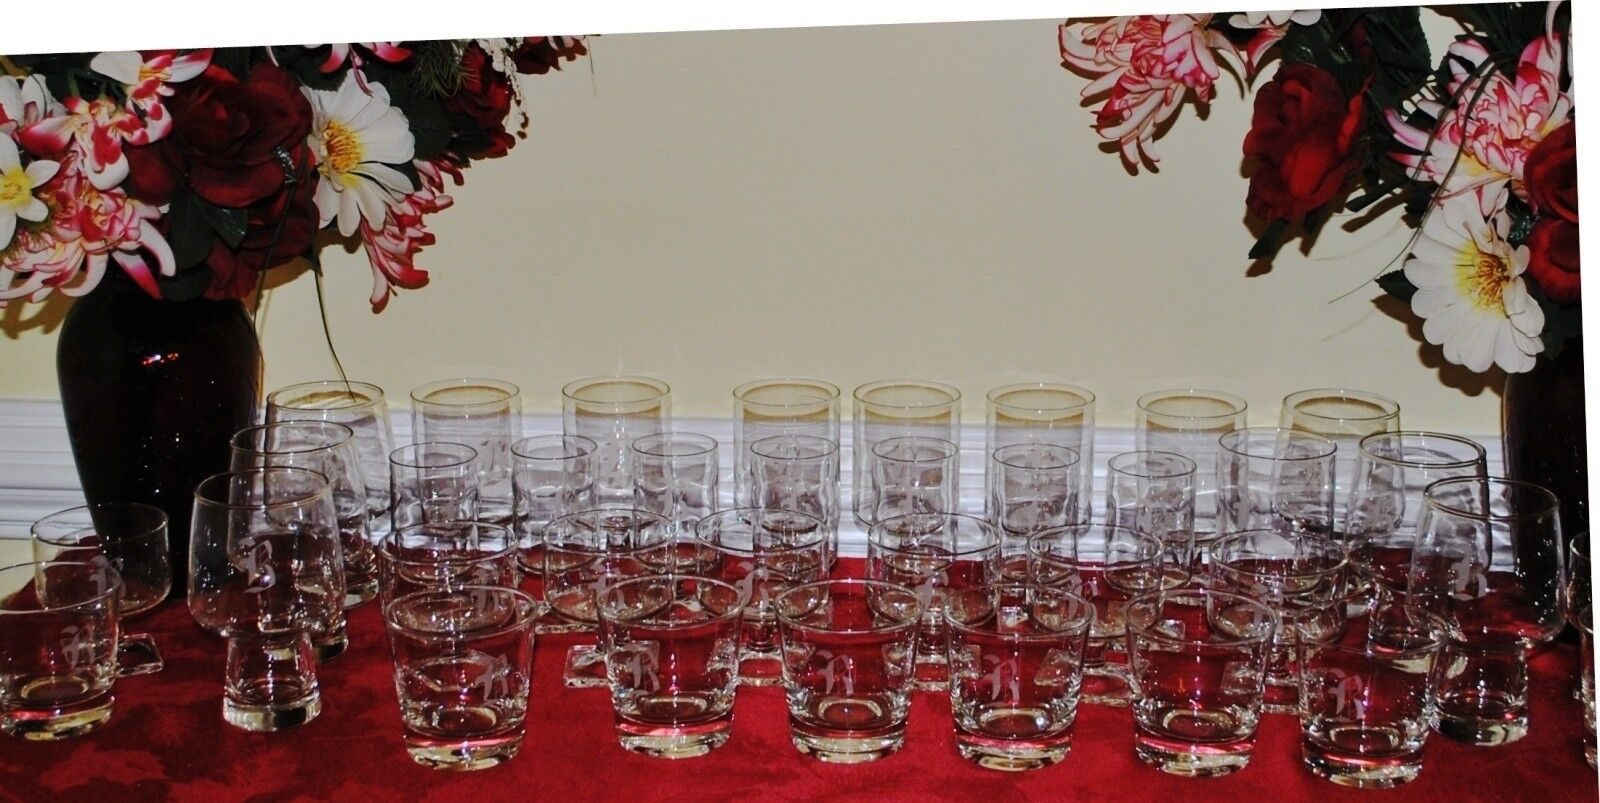 Personalized Etched Glassware Set of 37 Pcs Monogrammed Engraved Letter B